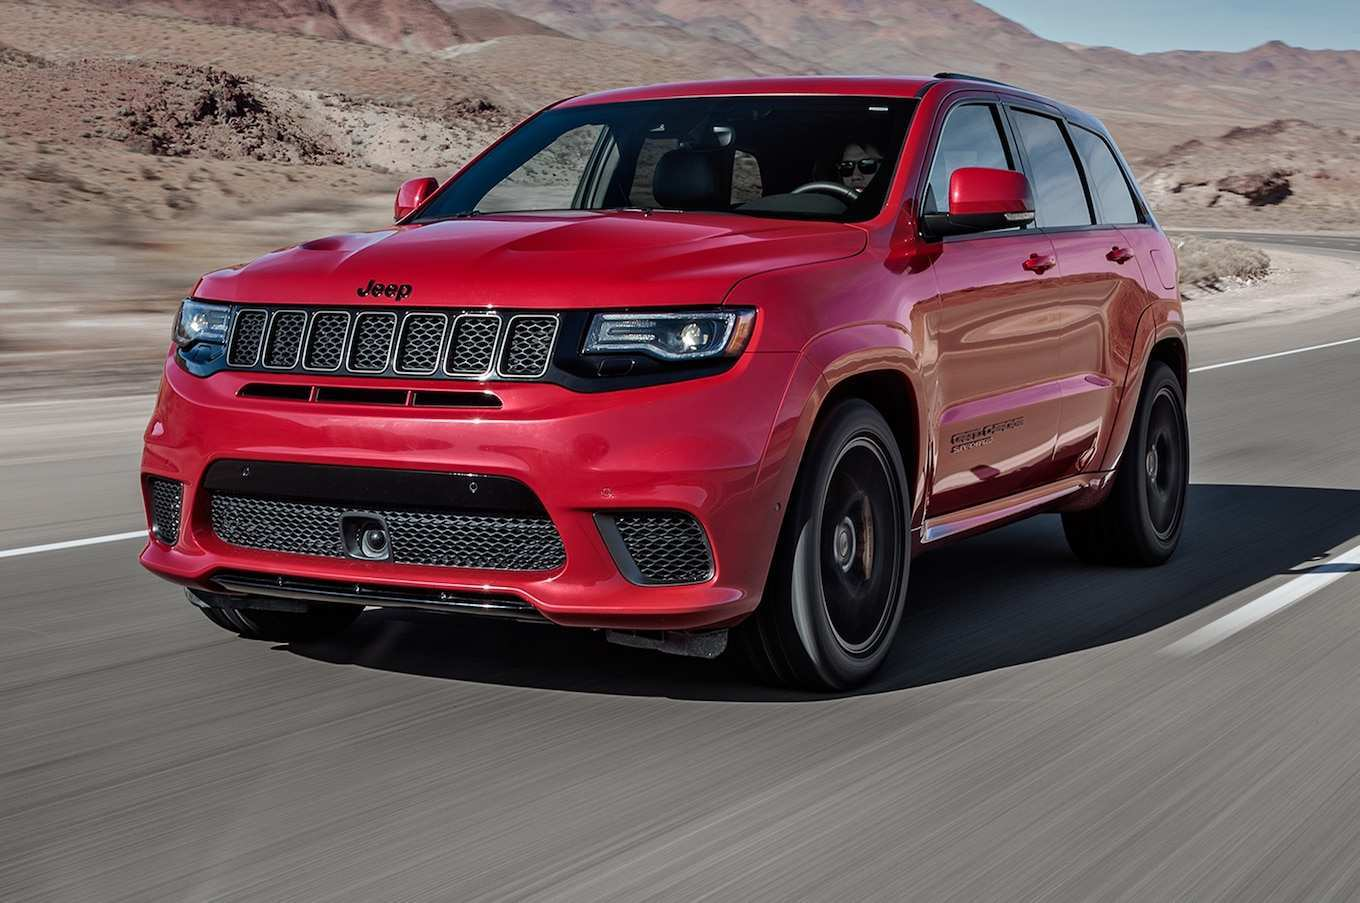 73 Best Review Jeep Grand Cherokee 2020 Spy Shots Photos with Jeep Grand Cherokee 2020 Spy Shots